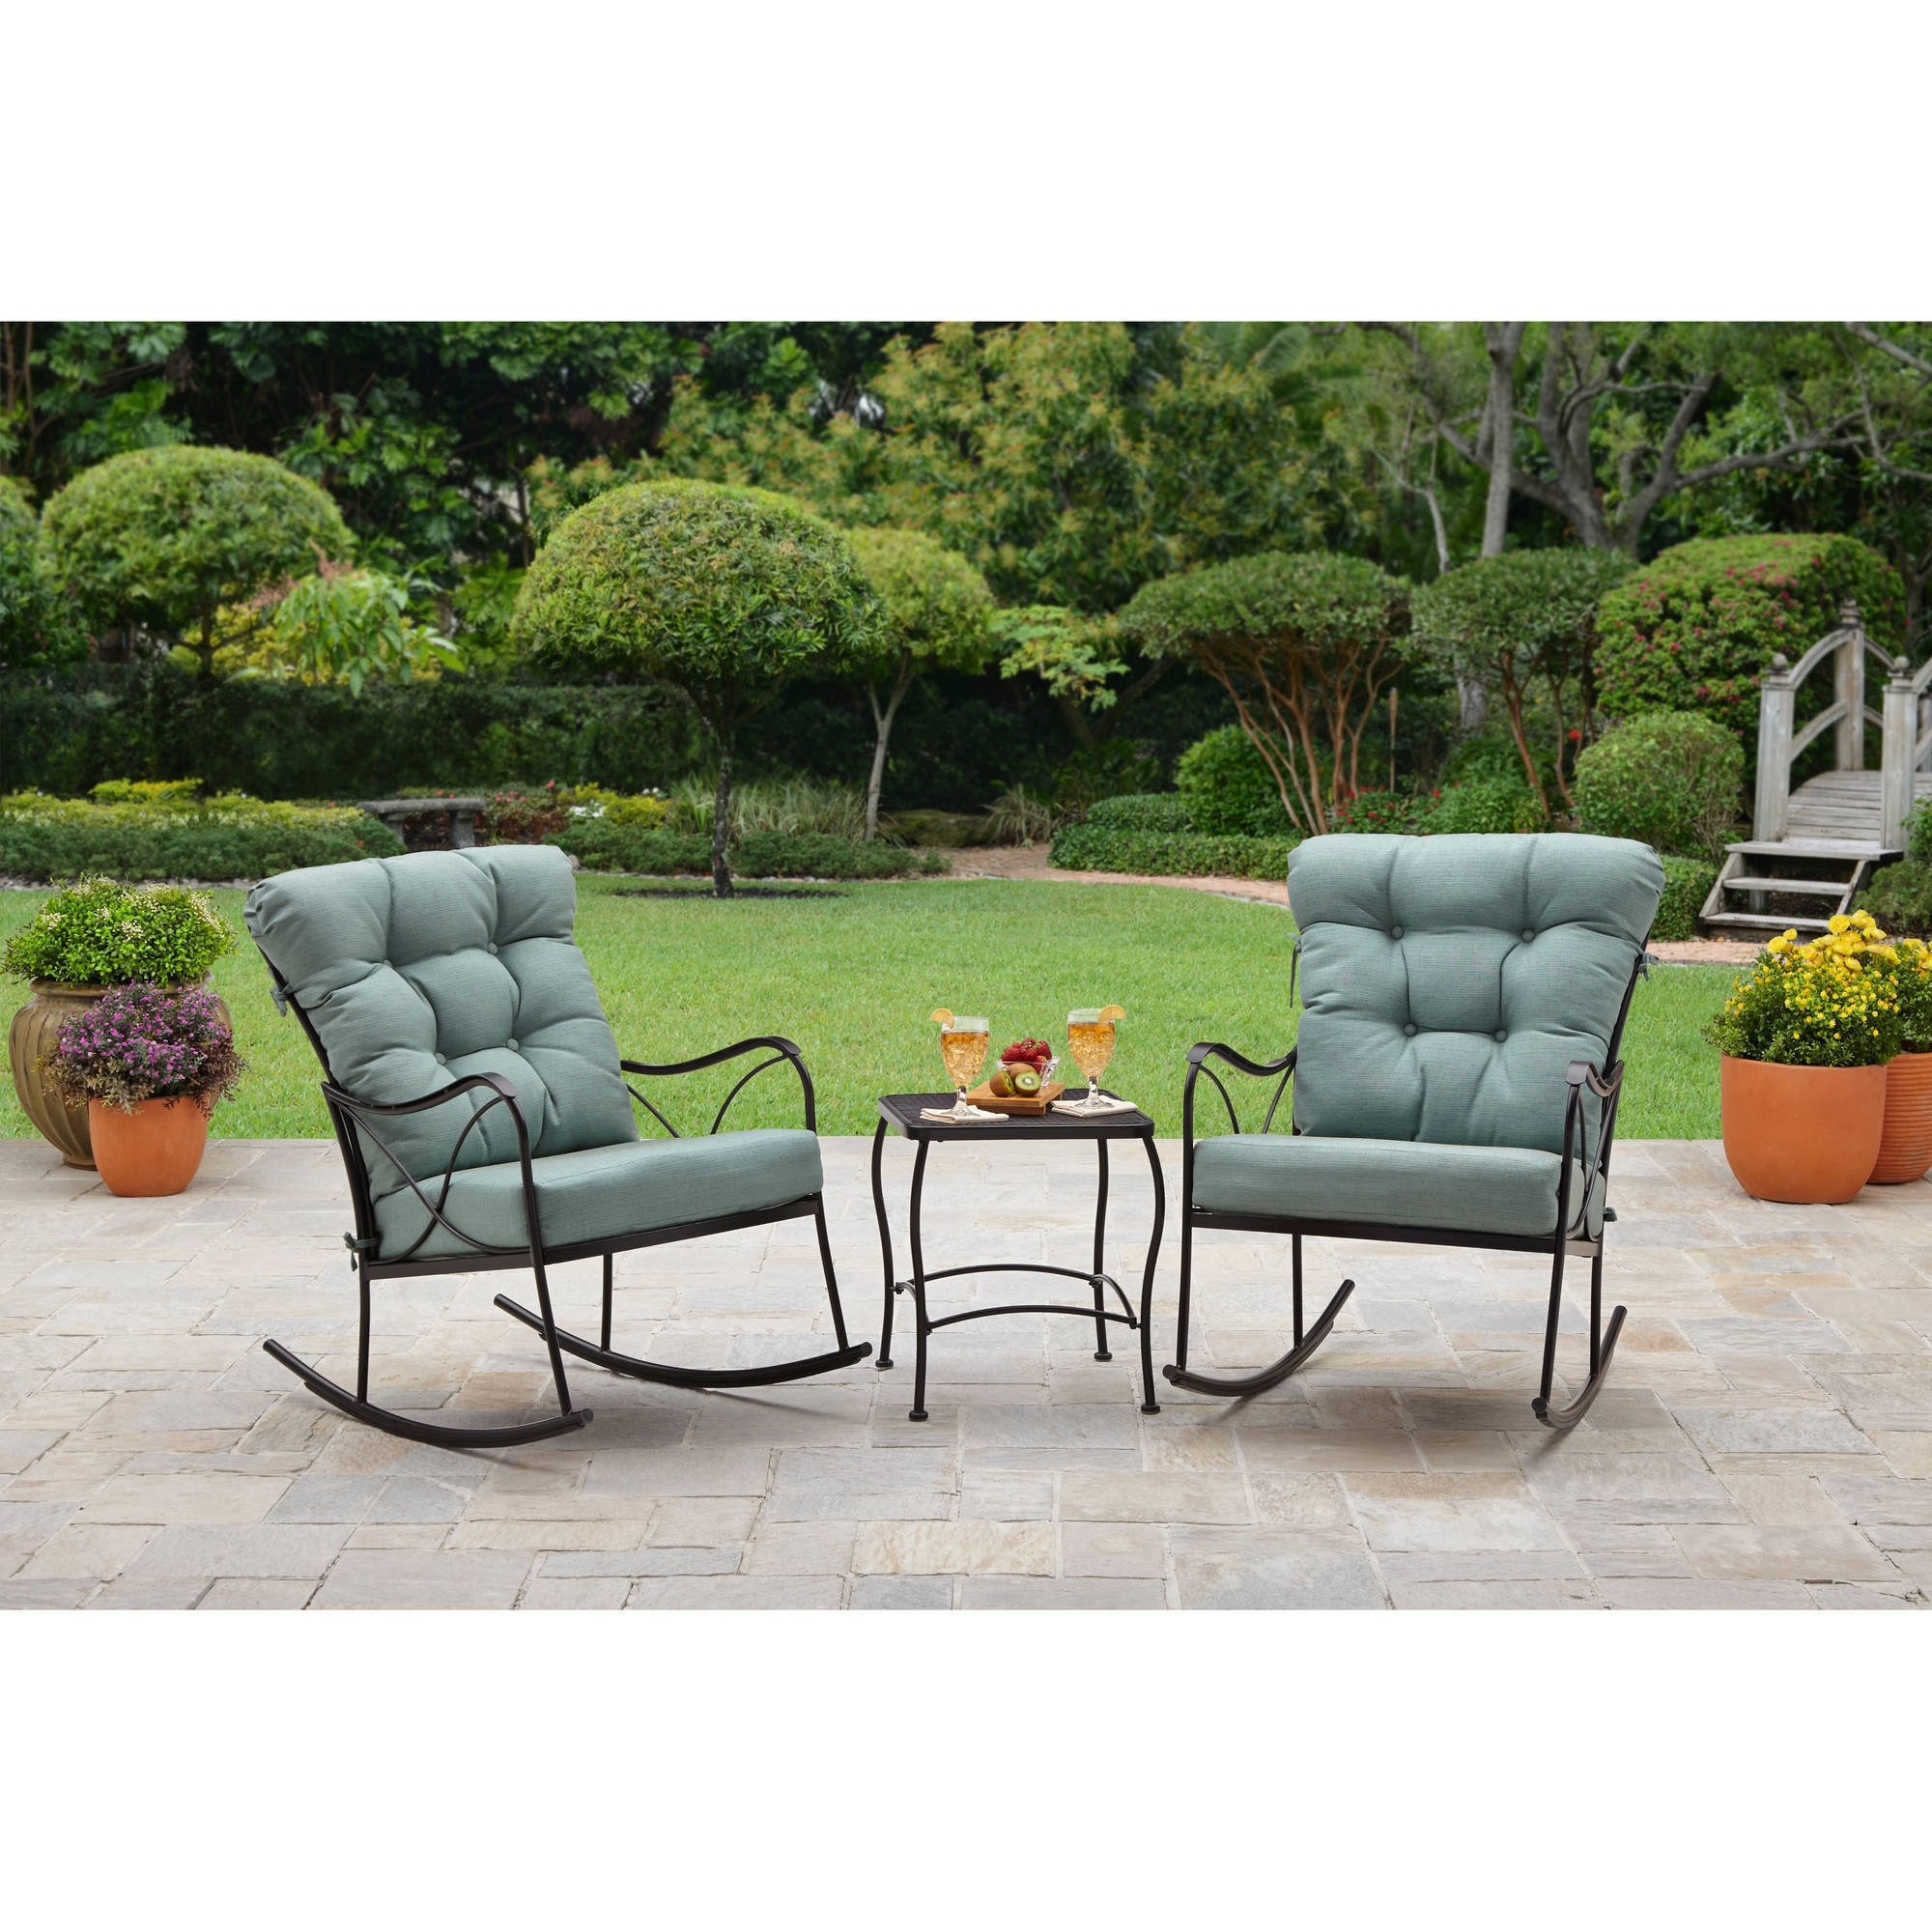 Better Homes And Gardens Seacliff 3 Piece Rocking Chair Bistro Set Regarding Patio Rocking Chairs Sets (#2 of 15)